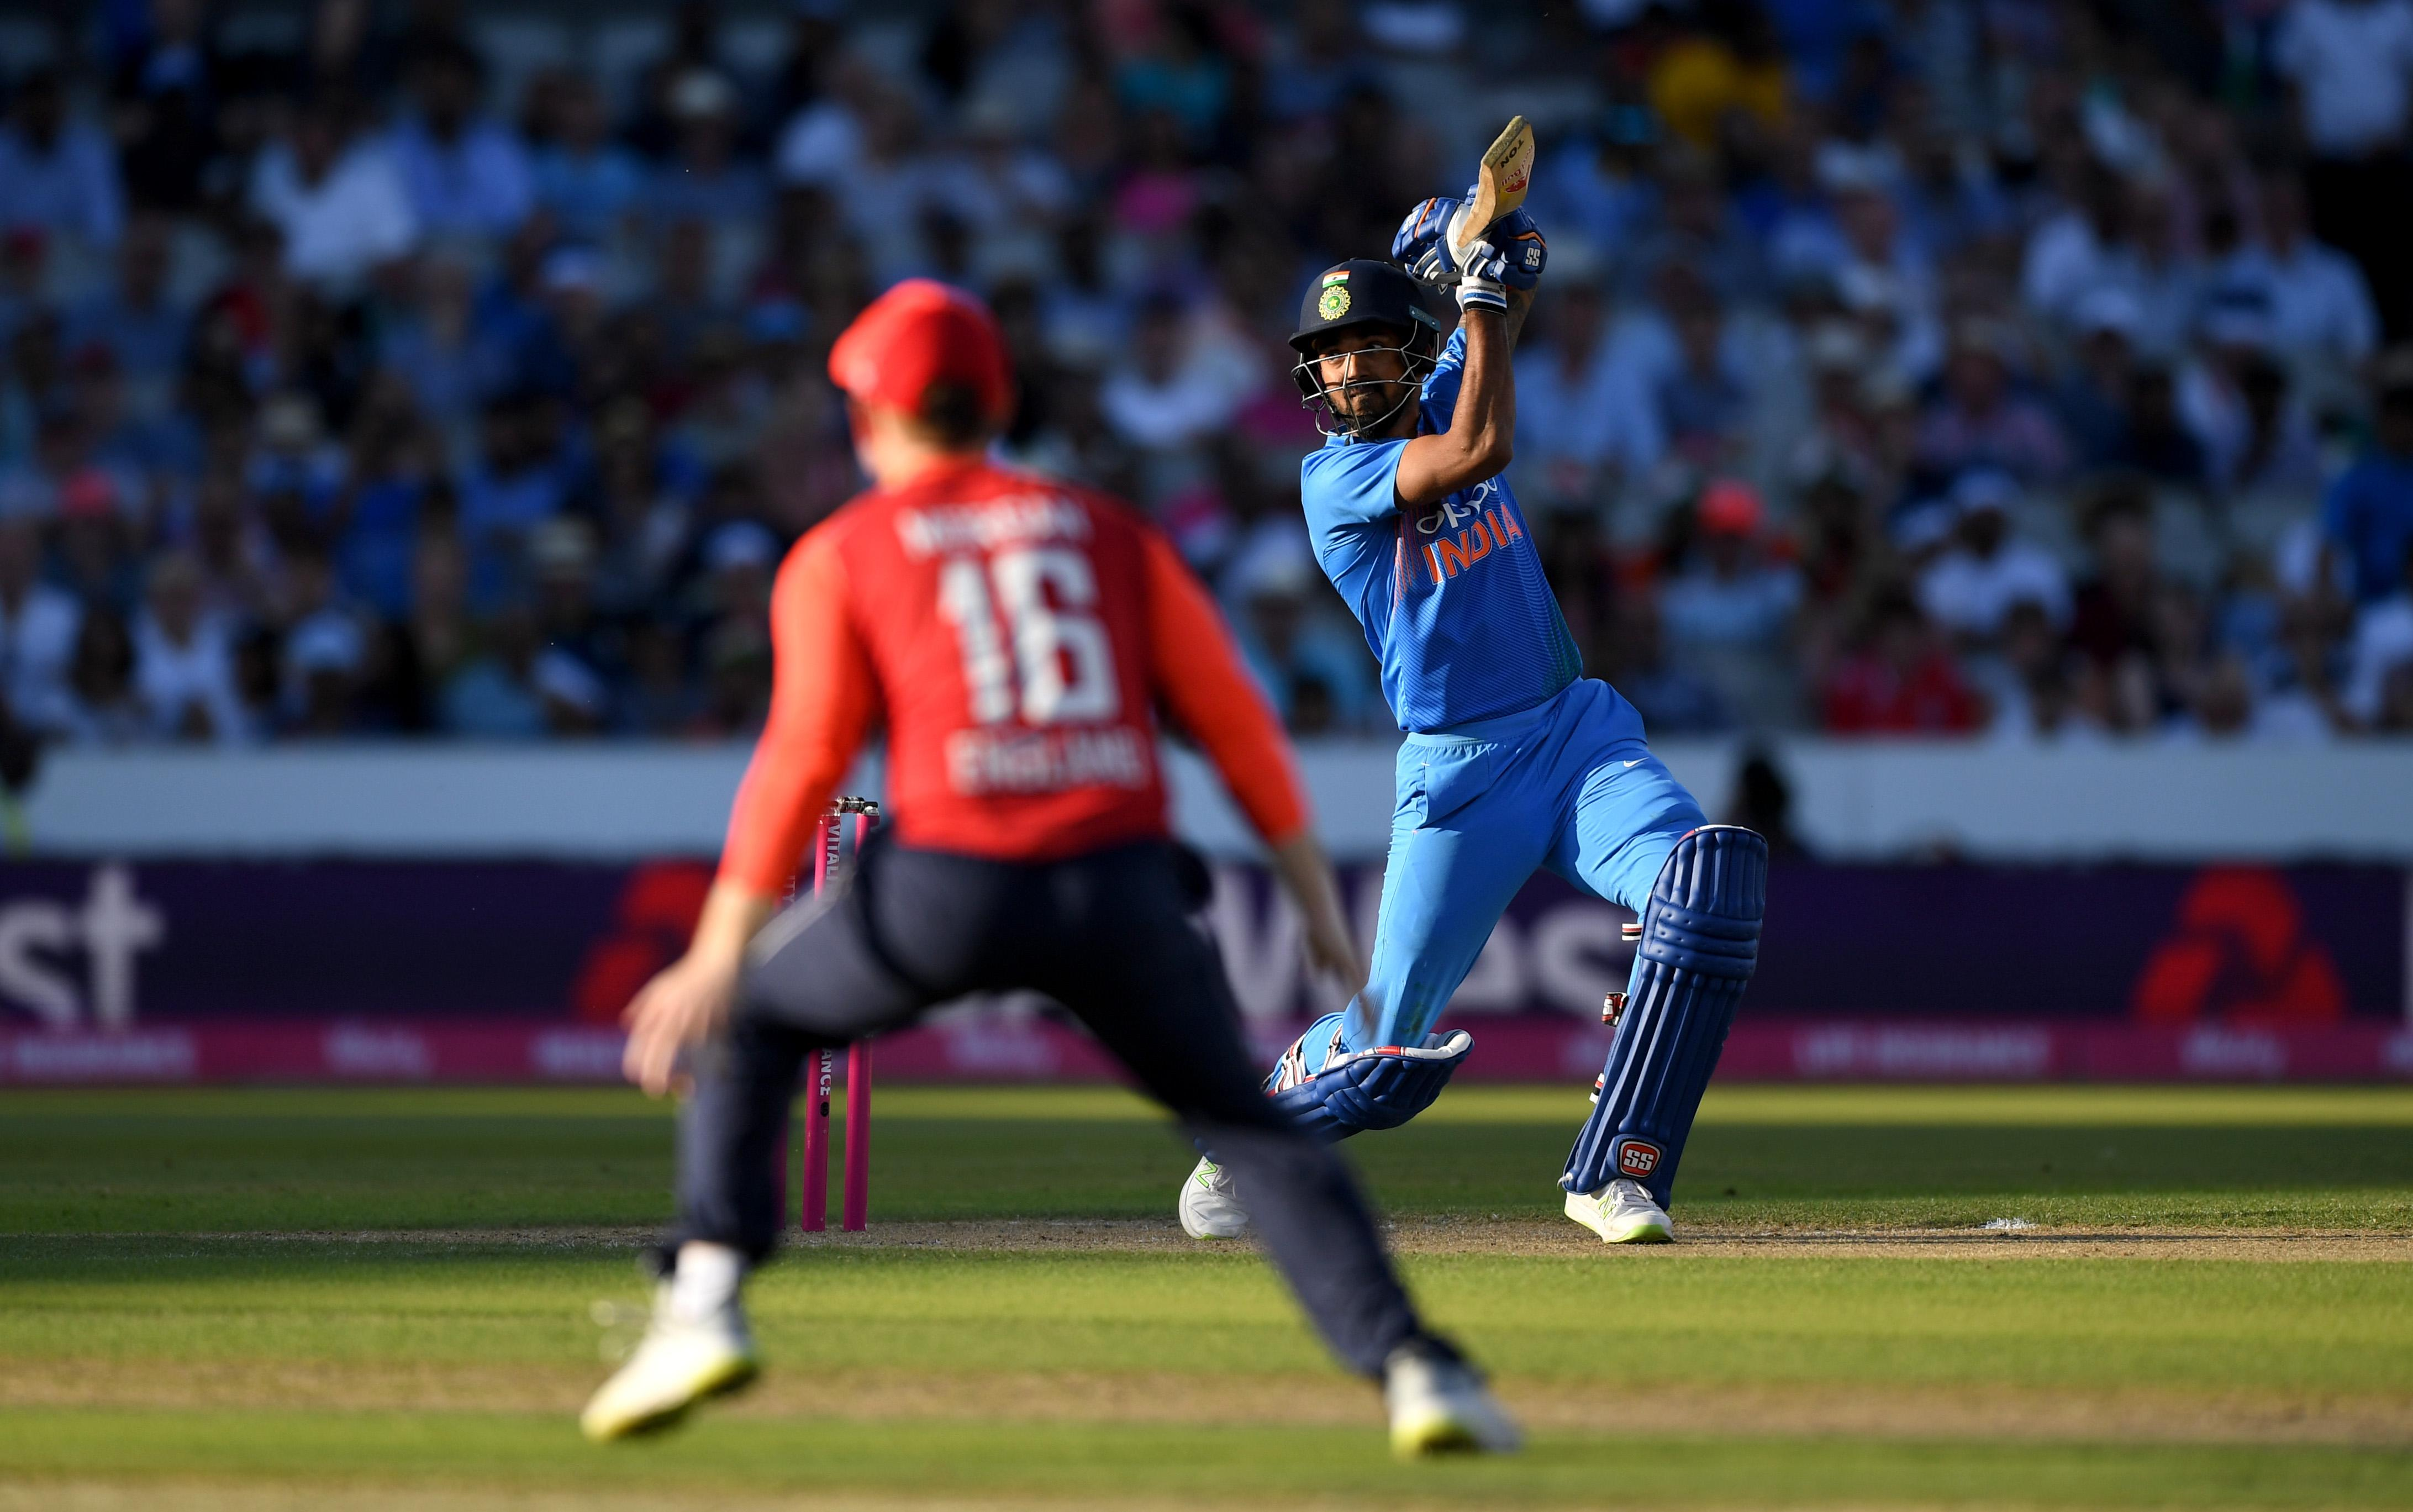 KL Rahul's century powered India to victory in the first T20 on Tuesday in Manchester